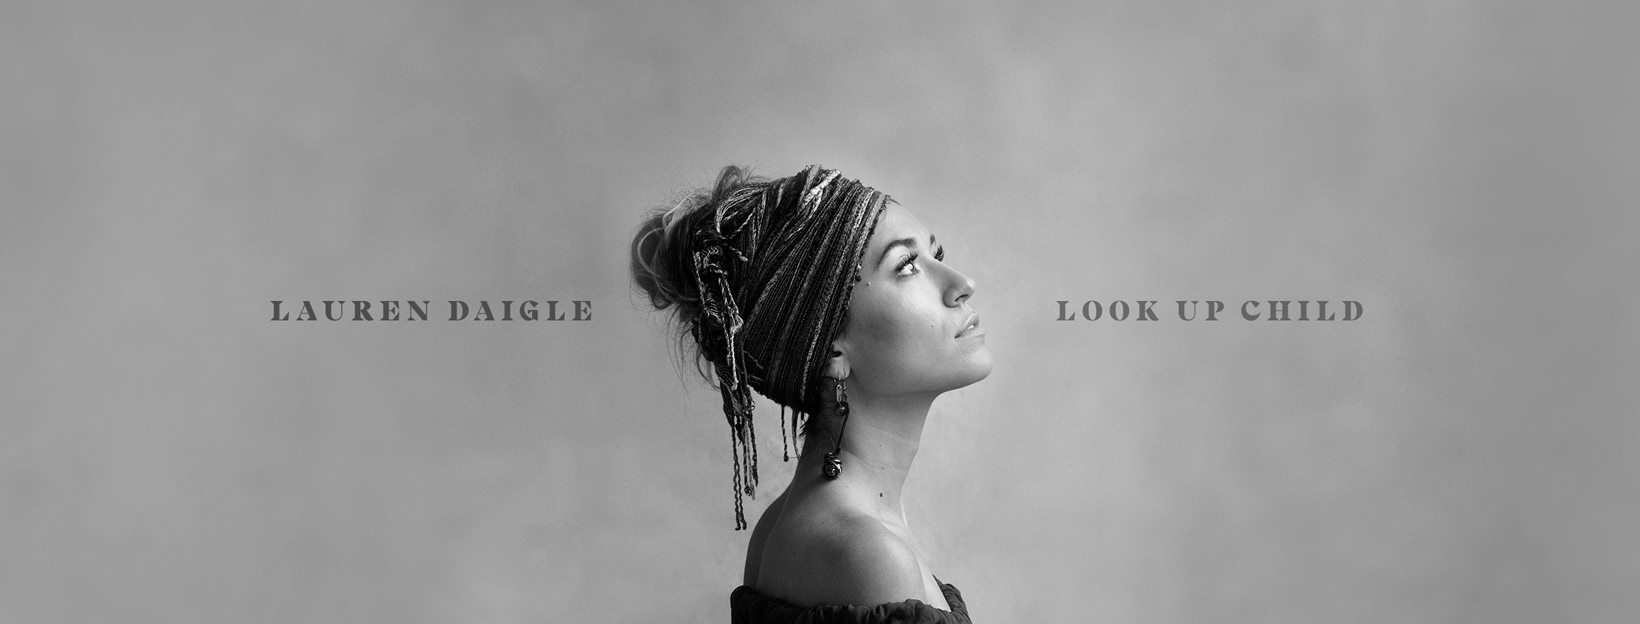 Lauren Daigle Reveals Additional Details on Forthcoming Album